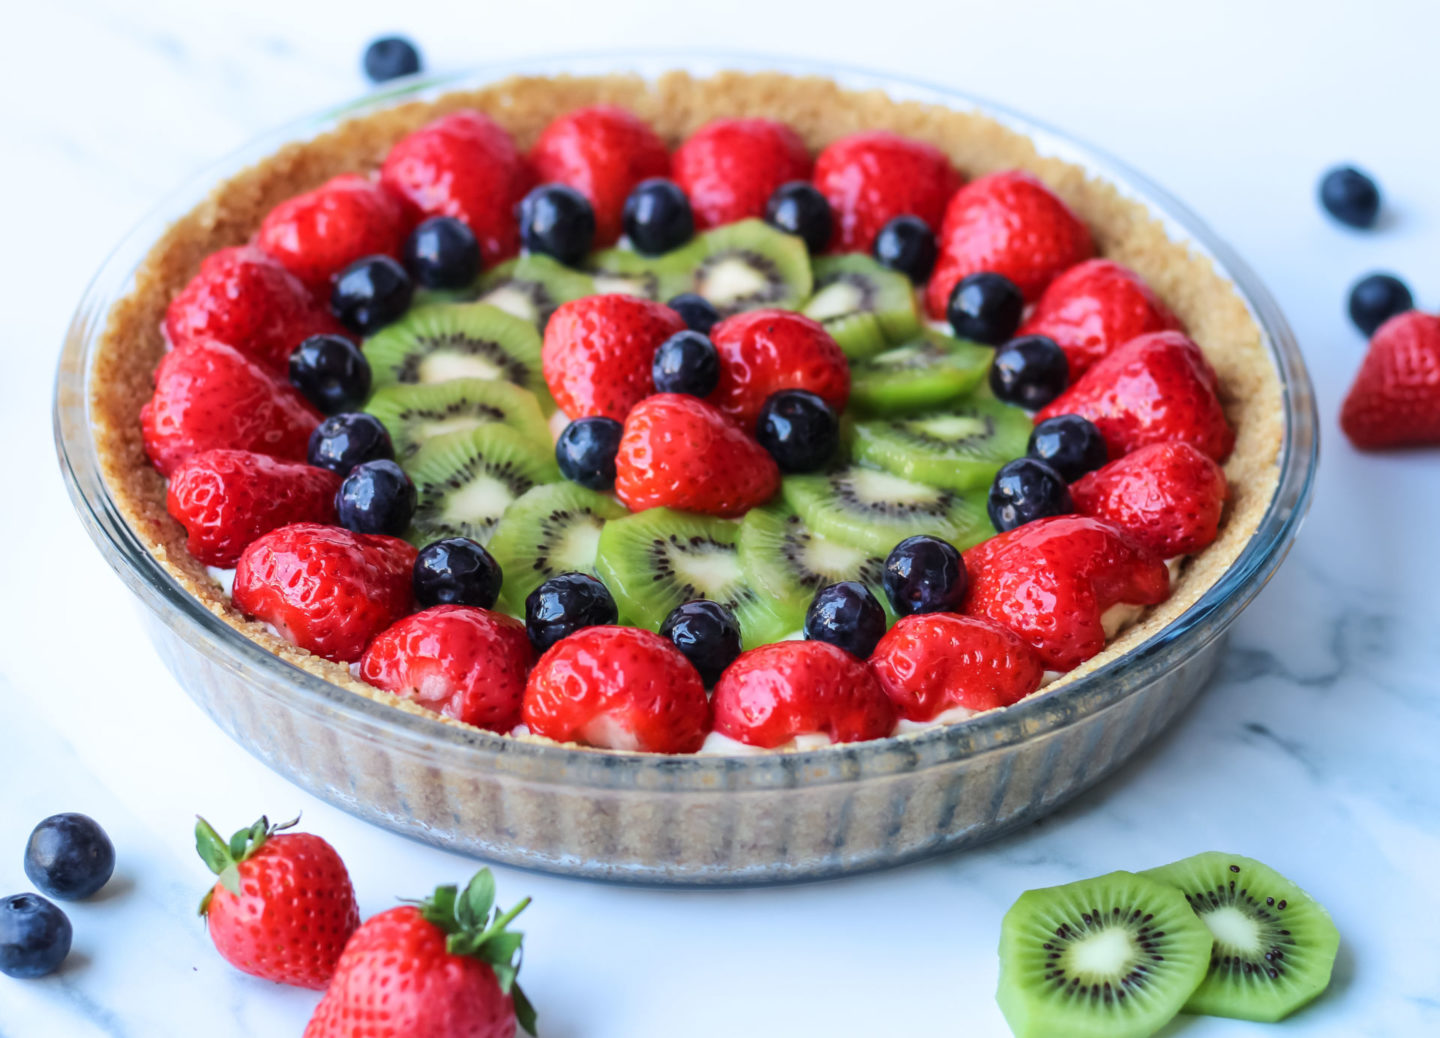 whole no bake fruit tart before slicing